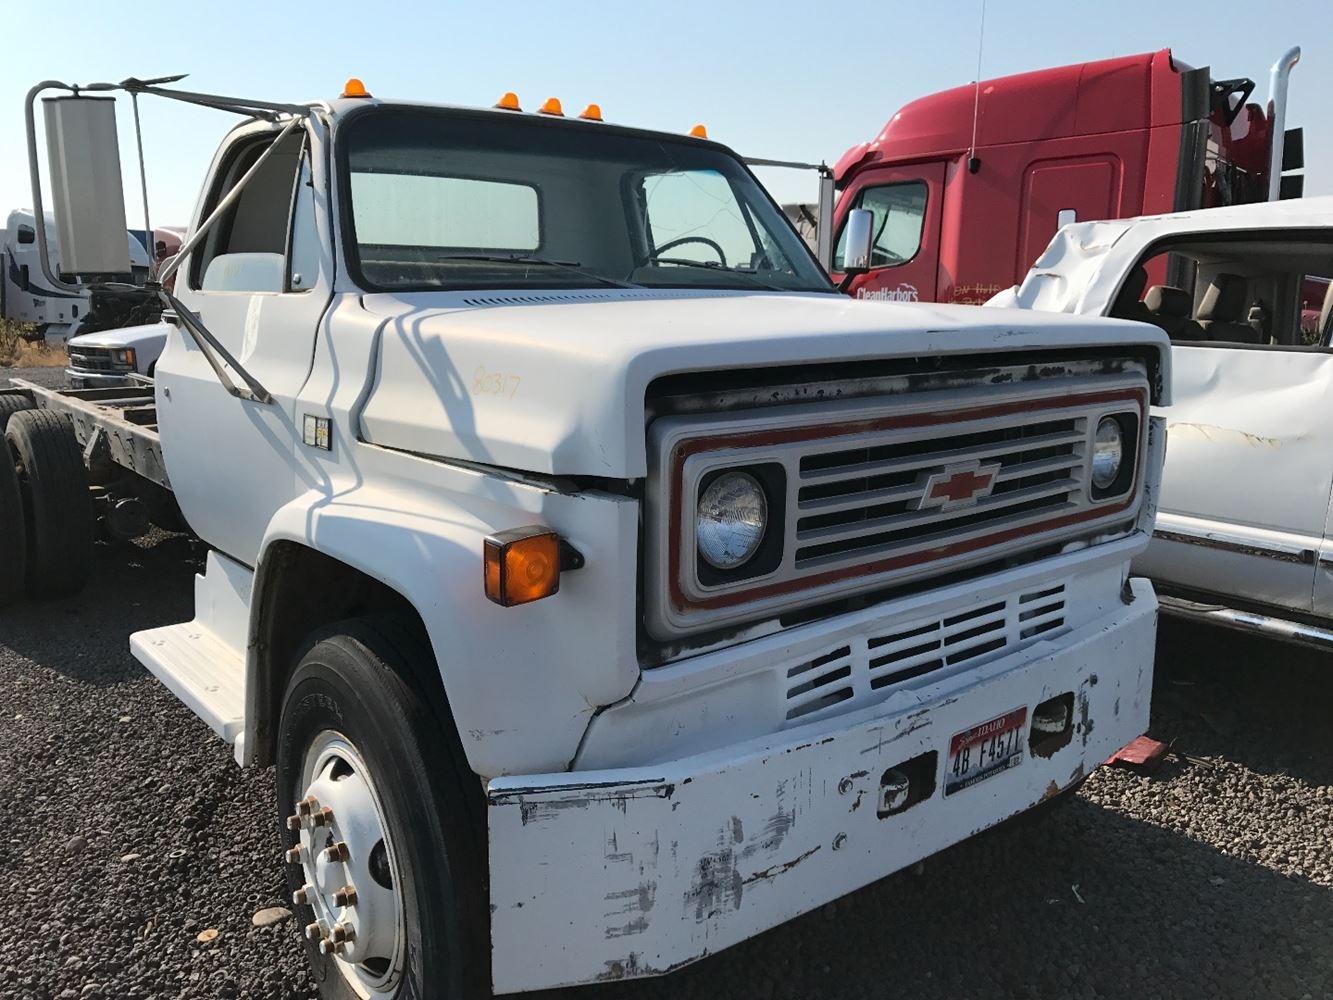 [DIAGRAM_5FD]  1984 Chevrolet C70 | TPI | 1984 Chevy C70 Wiring Harness |  | Truck Parts Inventory